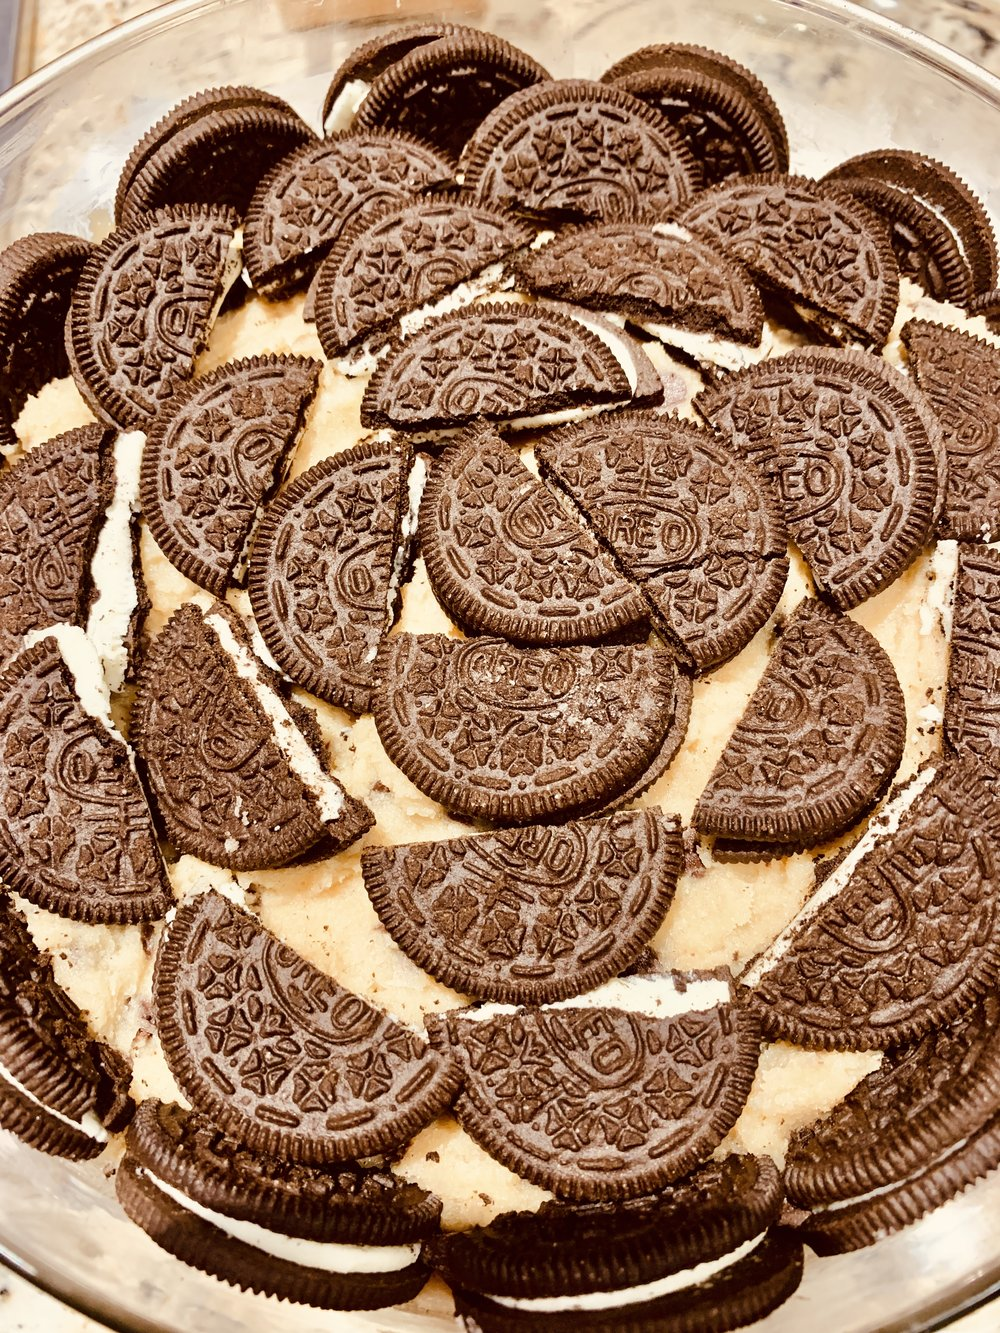 - Add halved Oreos. Pipe the outside with the half-moon shapes and then lay more in the center.